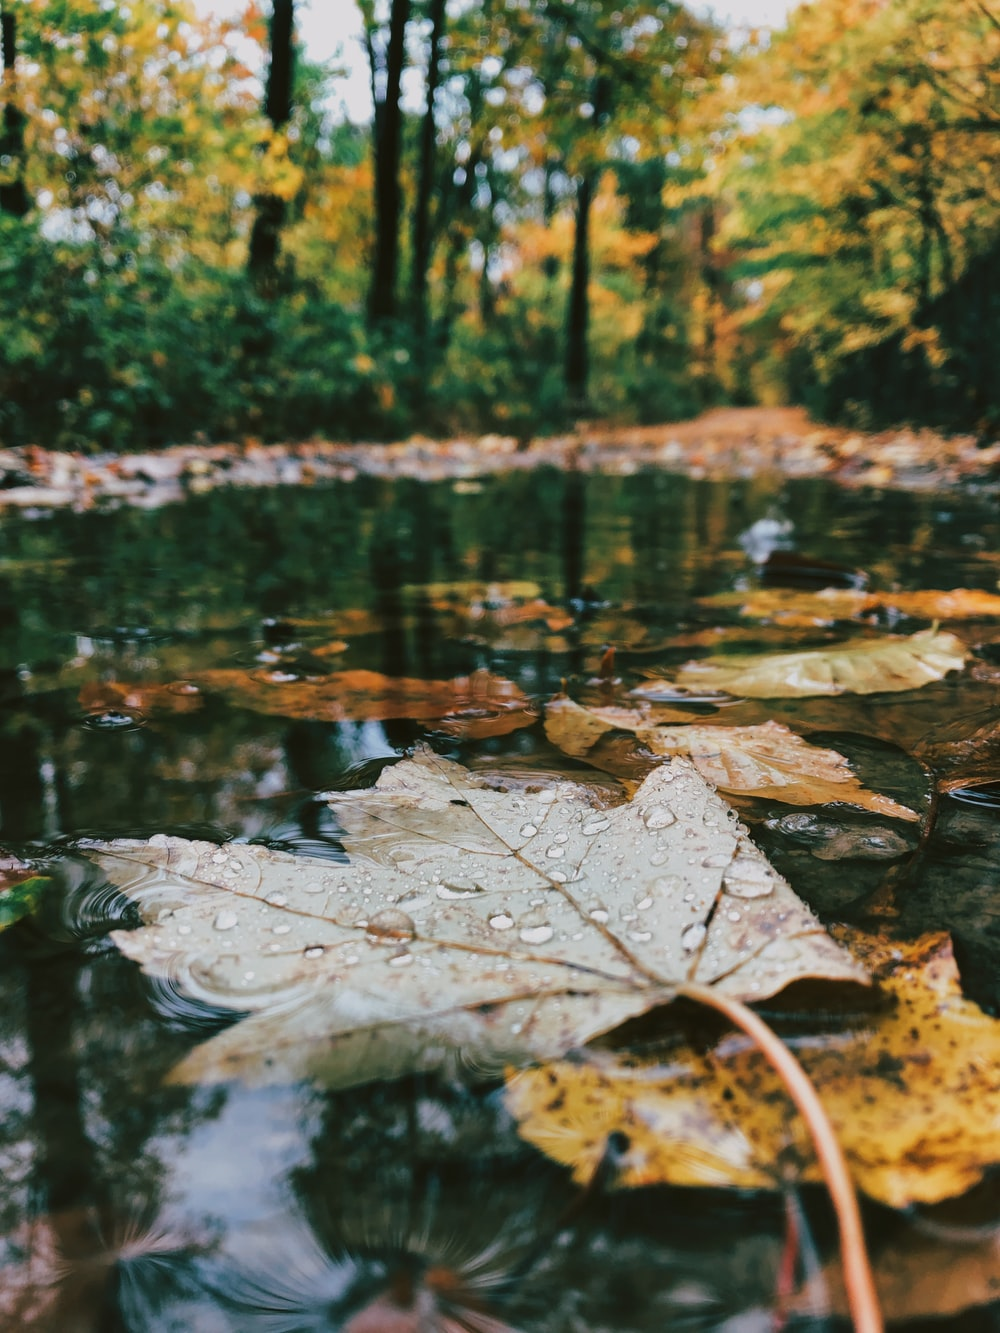 selective photo of leaves in body of water